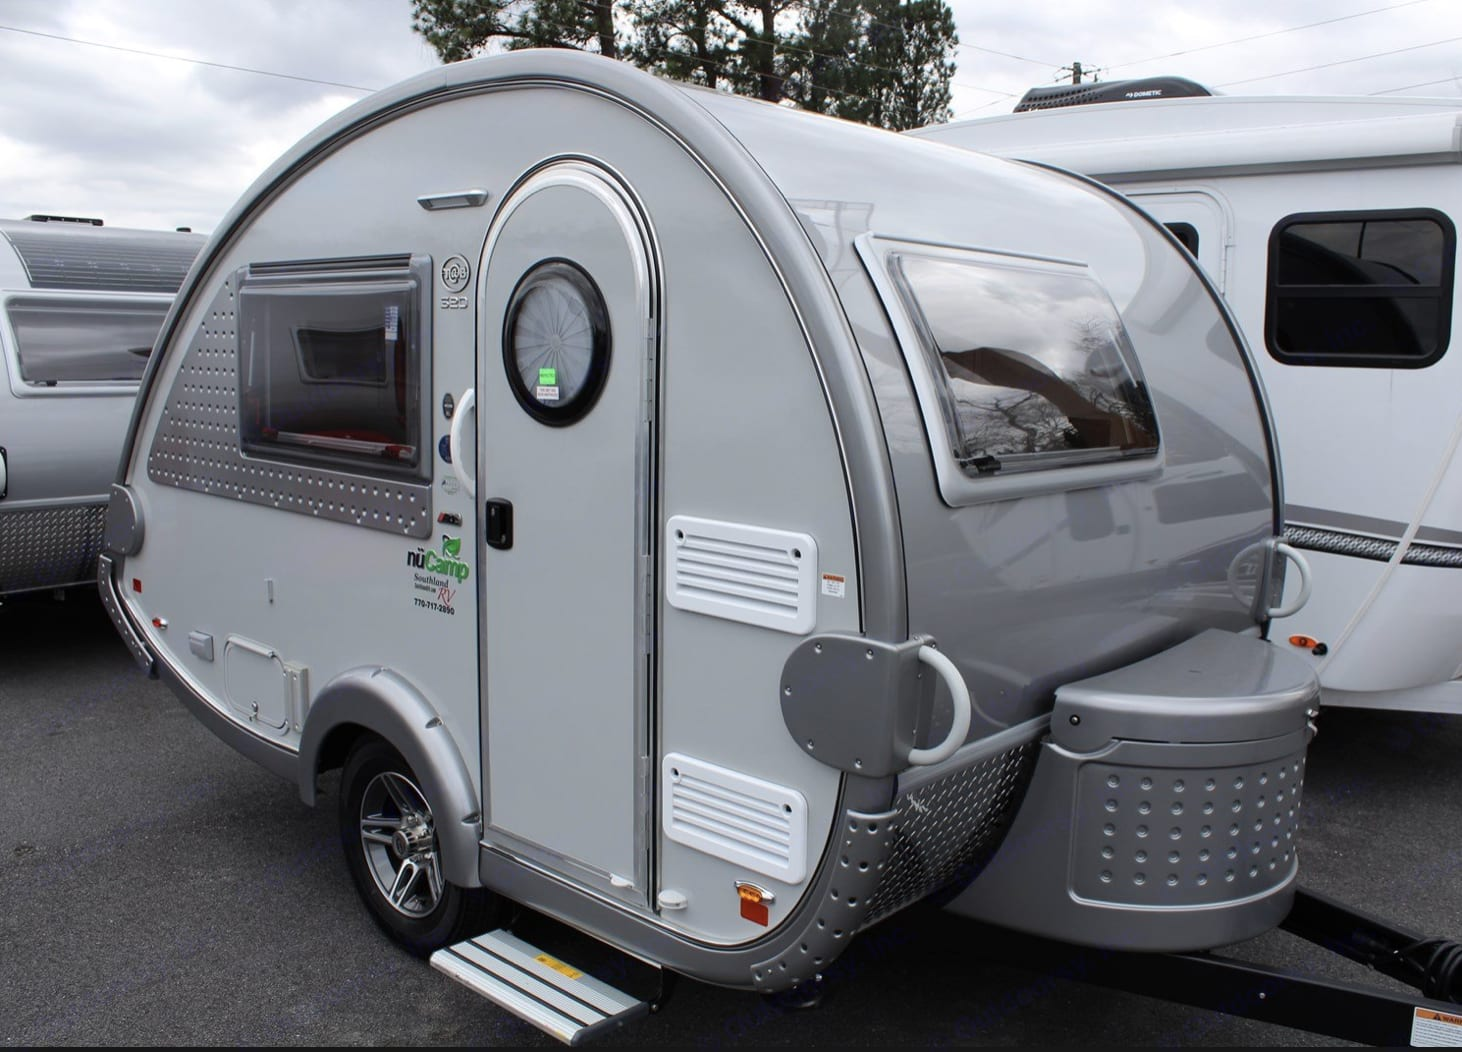 Classic Teardrop design with a modern twist — fabulous glamping amenities from TV to shower, stove, heat/AC, hot water, refrigerator and more! . T@B 320 RS 2019